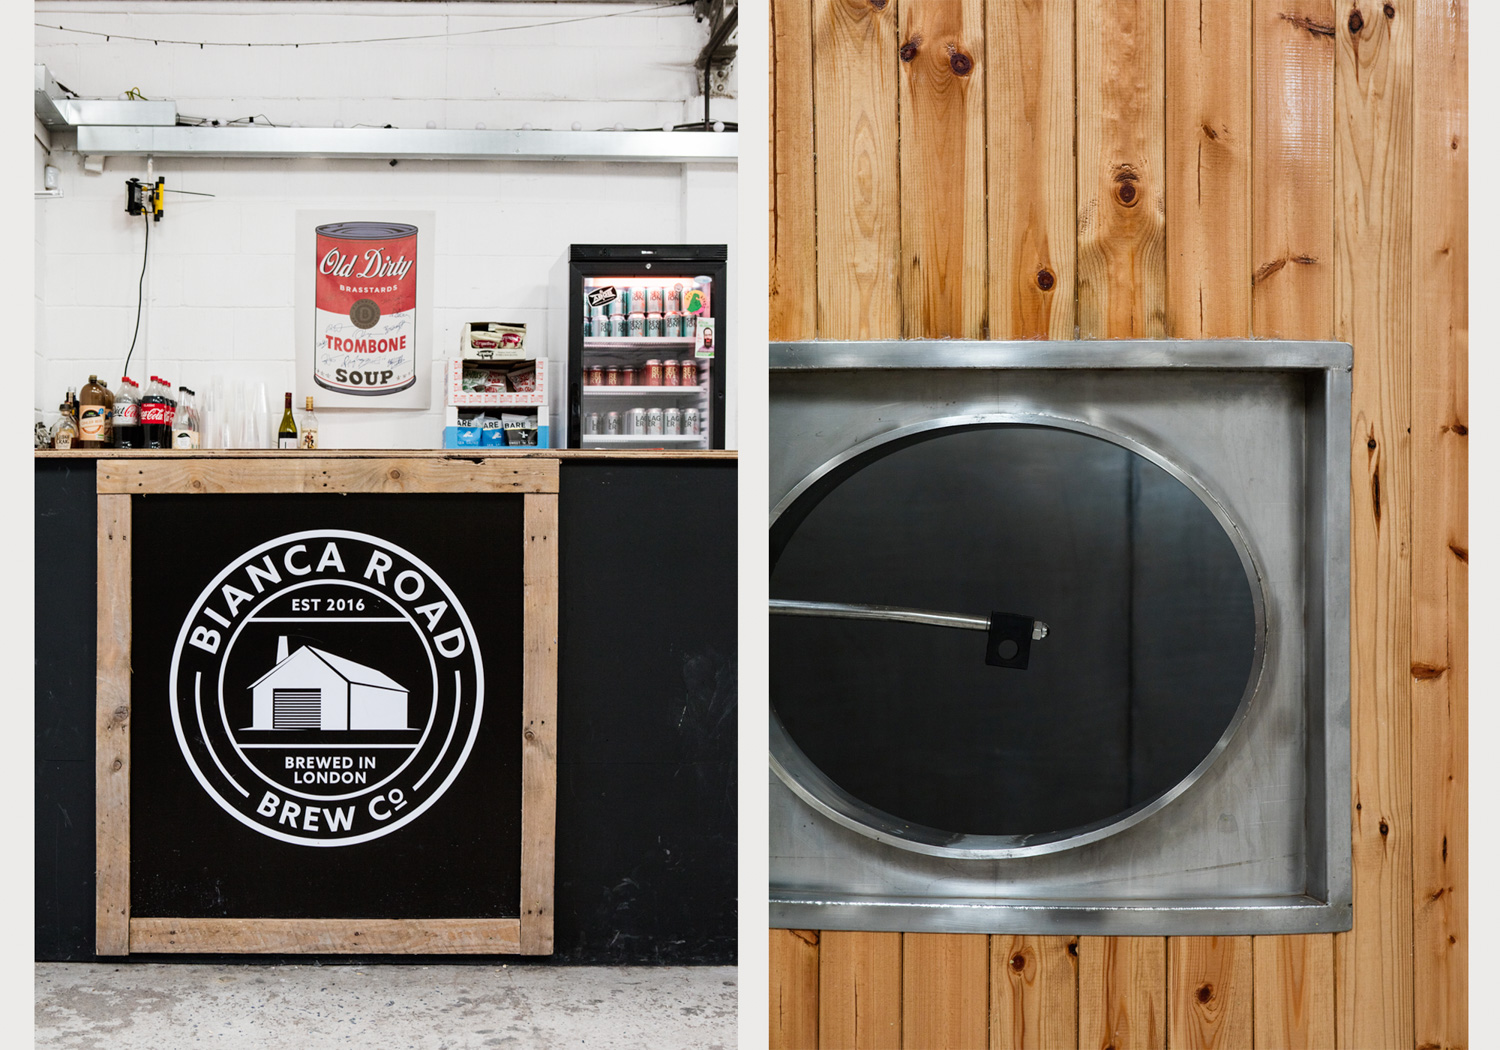 Bianca Road Brewery – Image by Alexander Christie-22